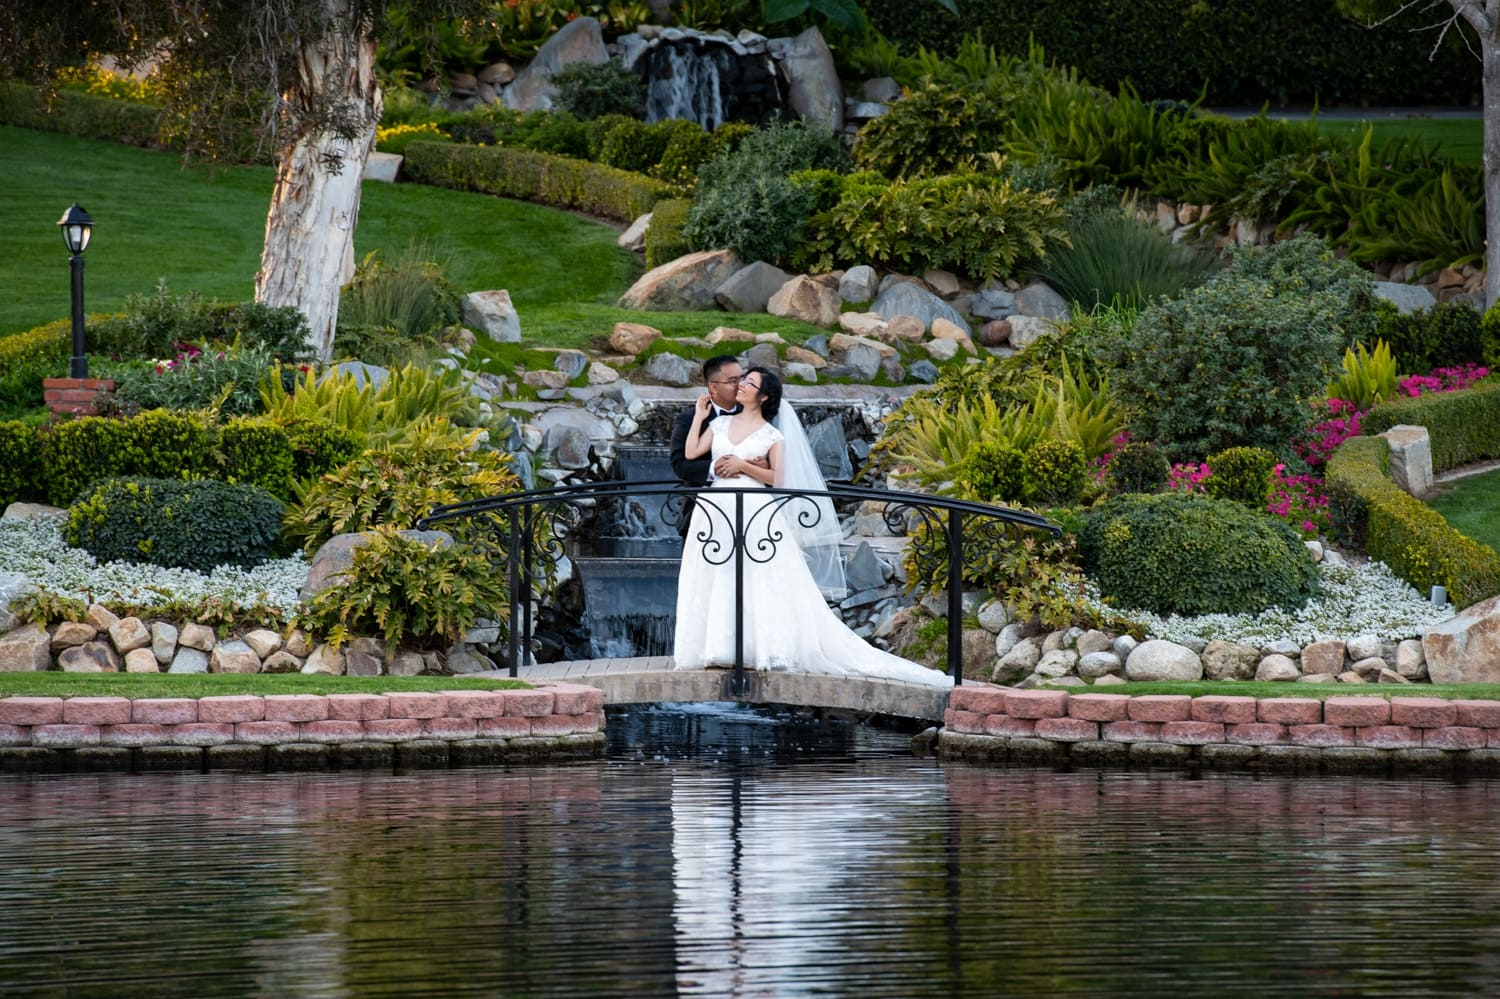 Bride and groom by the pond at the Grand Tradition Estate in Fallbrook, CA.